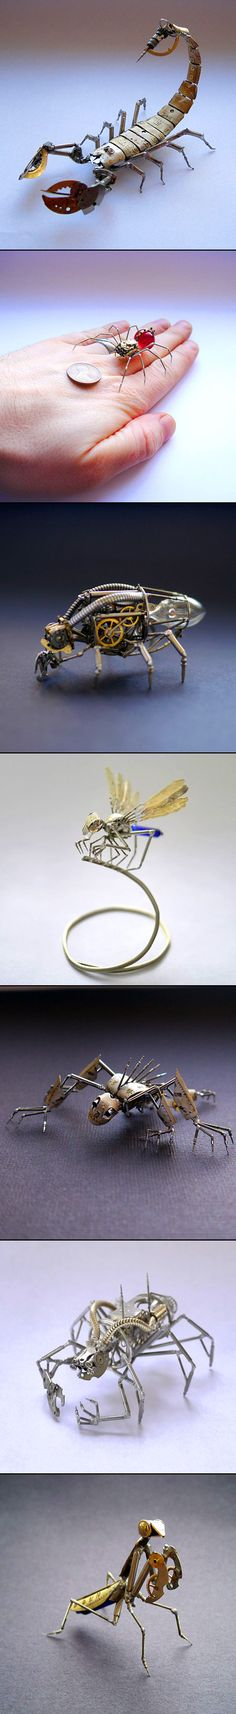 7 Incredible Insects Made Entirely from Mechanical Watch Parts